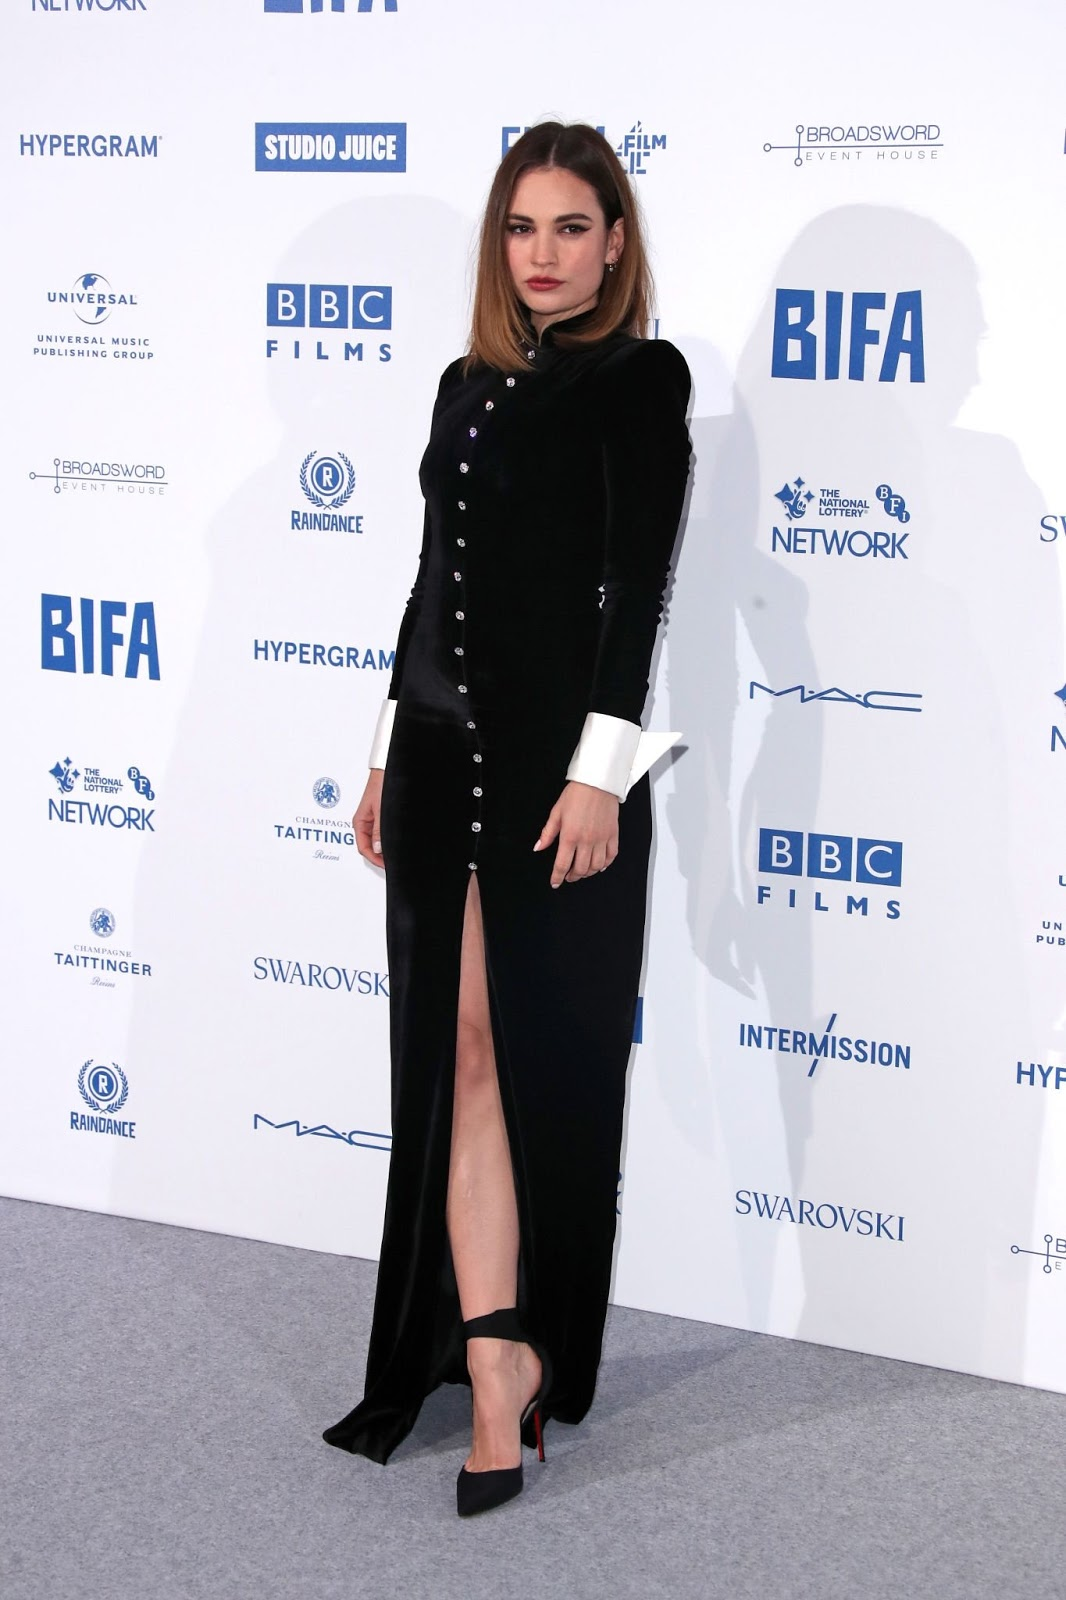 Lily James arrives at the British Independent Film Awards following Matt Smiths breakup